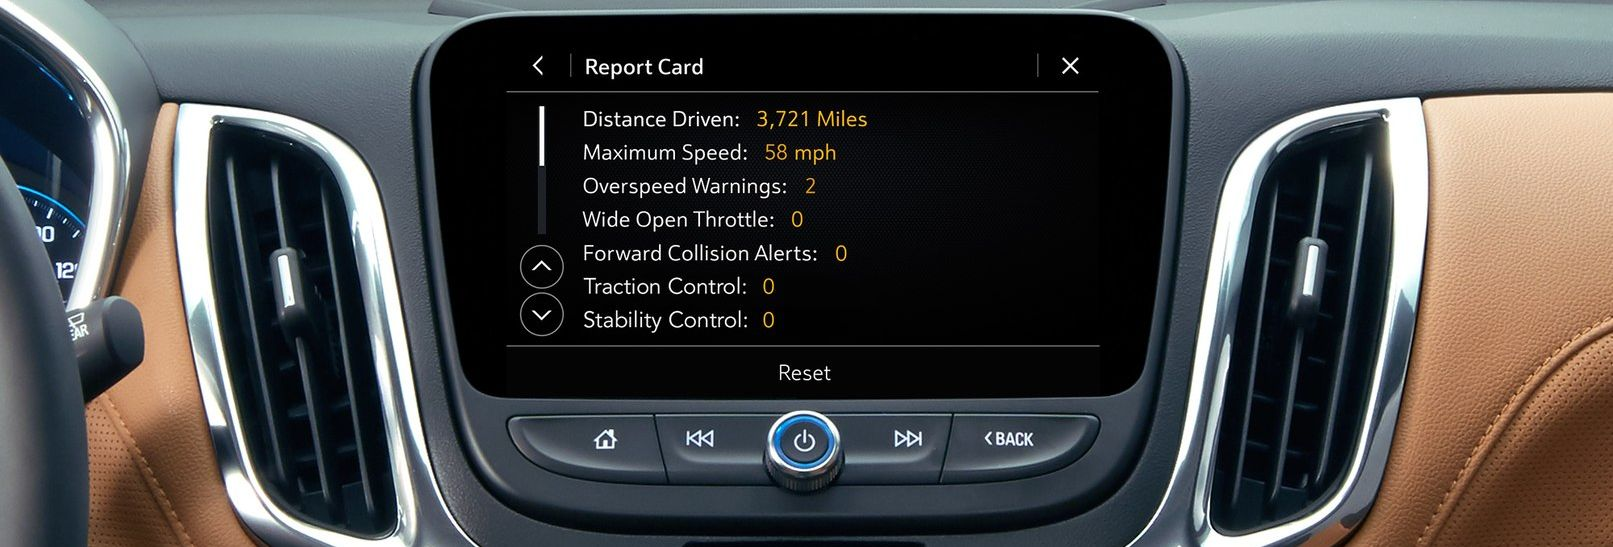 Engaging Features in the 2019 Equinox